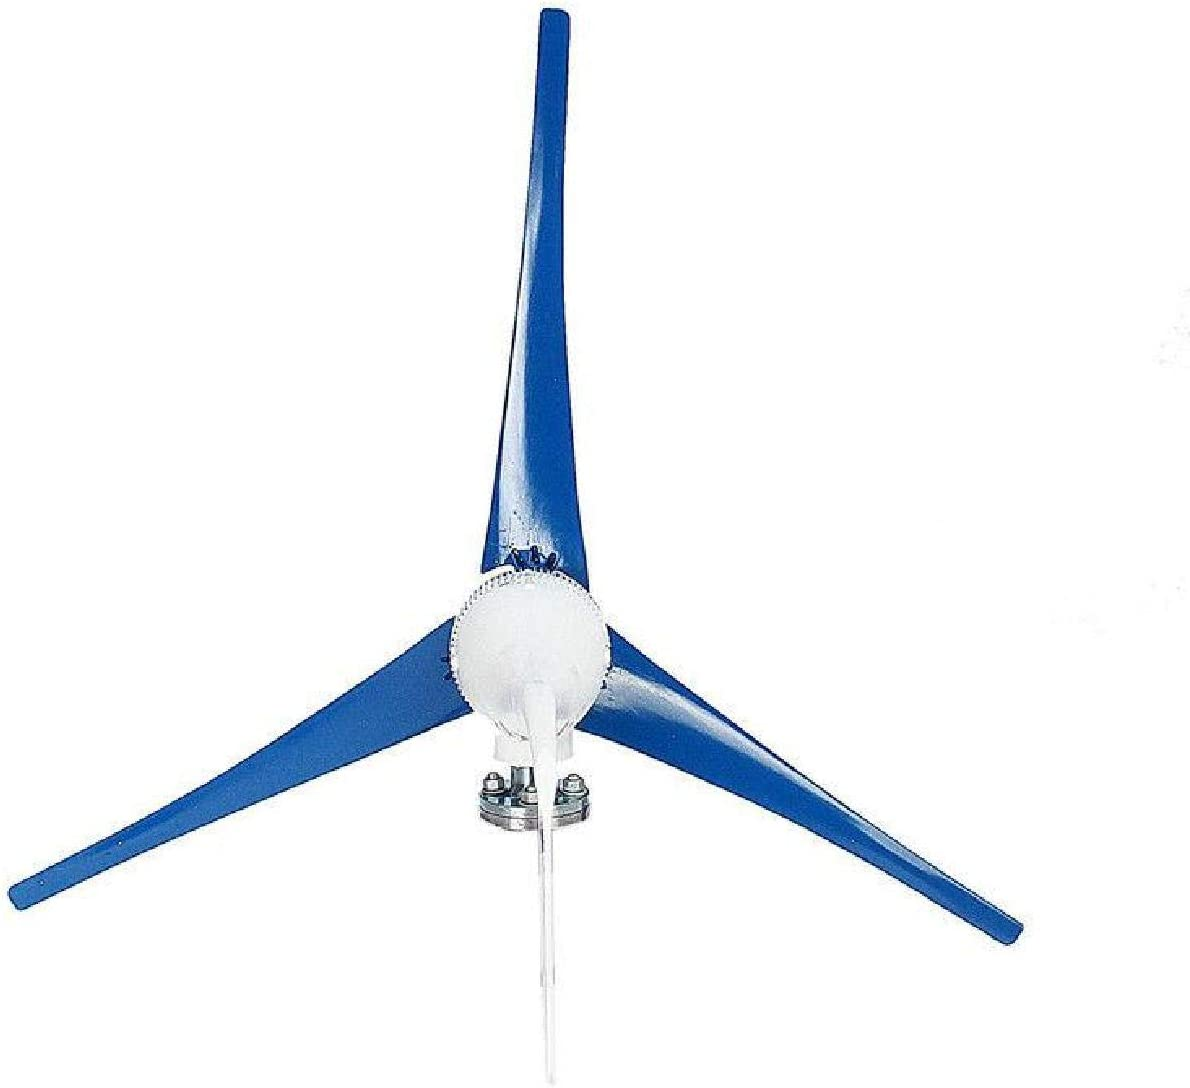 Dyna-Living Wind Turbine Generator 800W 24V Businesses 3 Blade with Controller for Marine RV Homes Industrial Energy